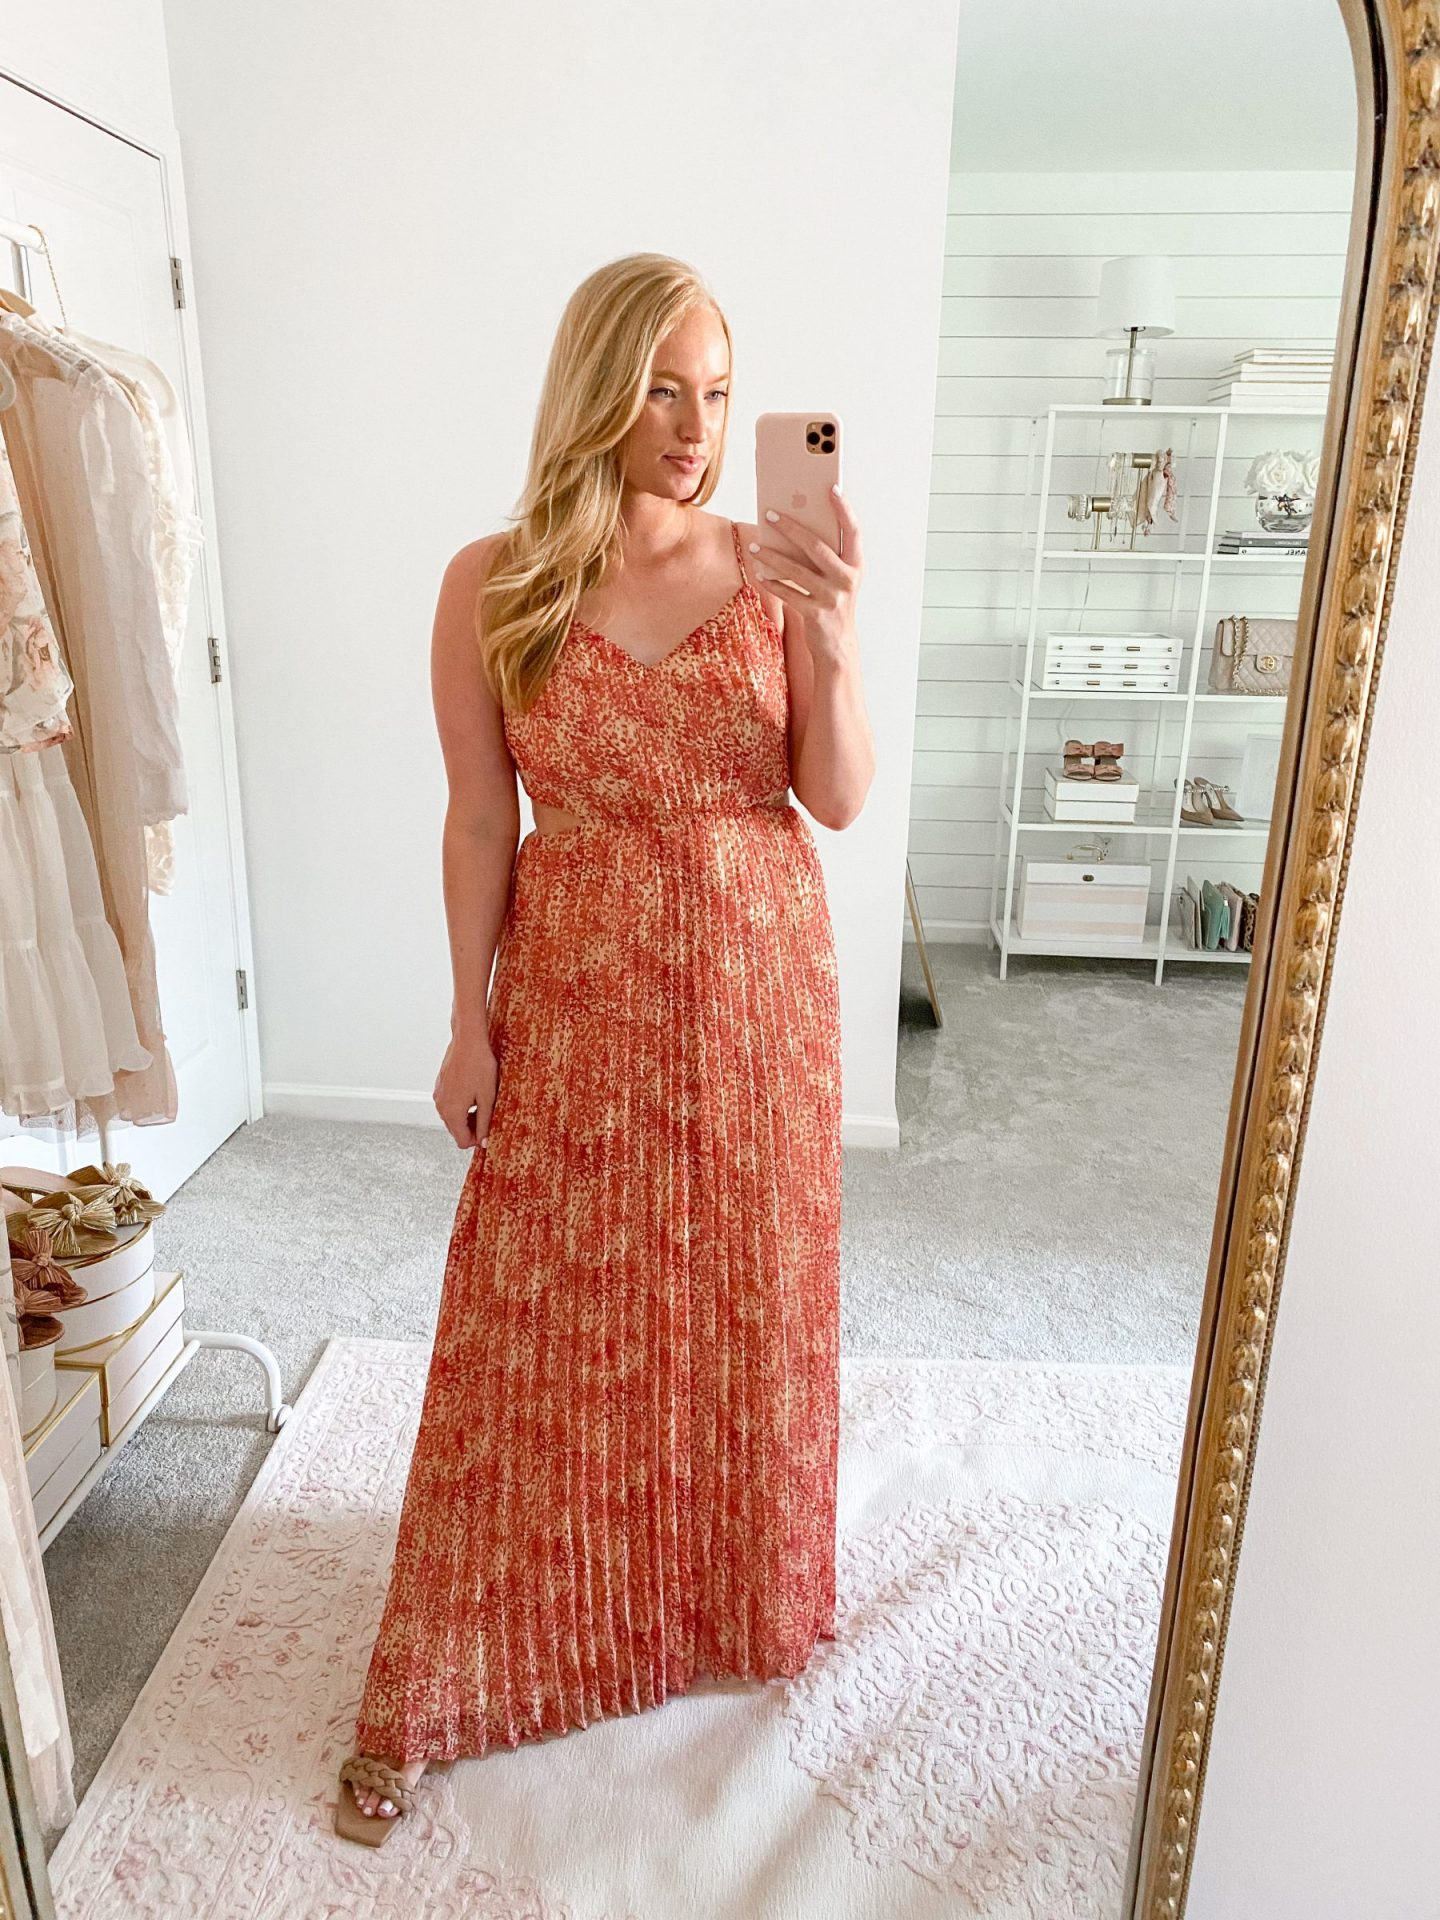 What to wear to fall weddings